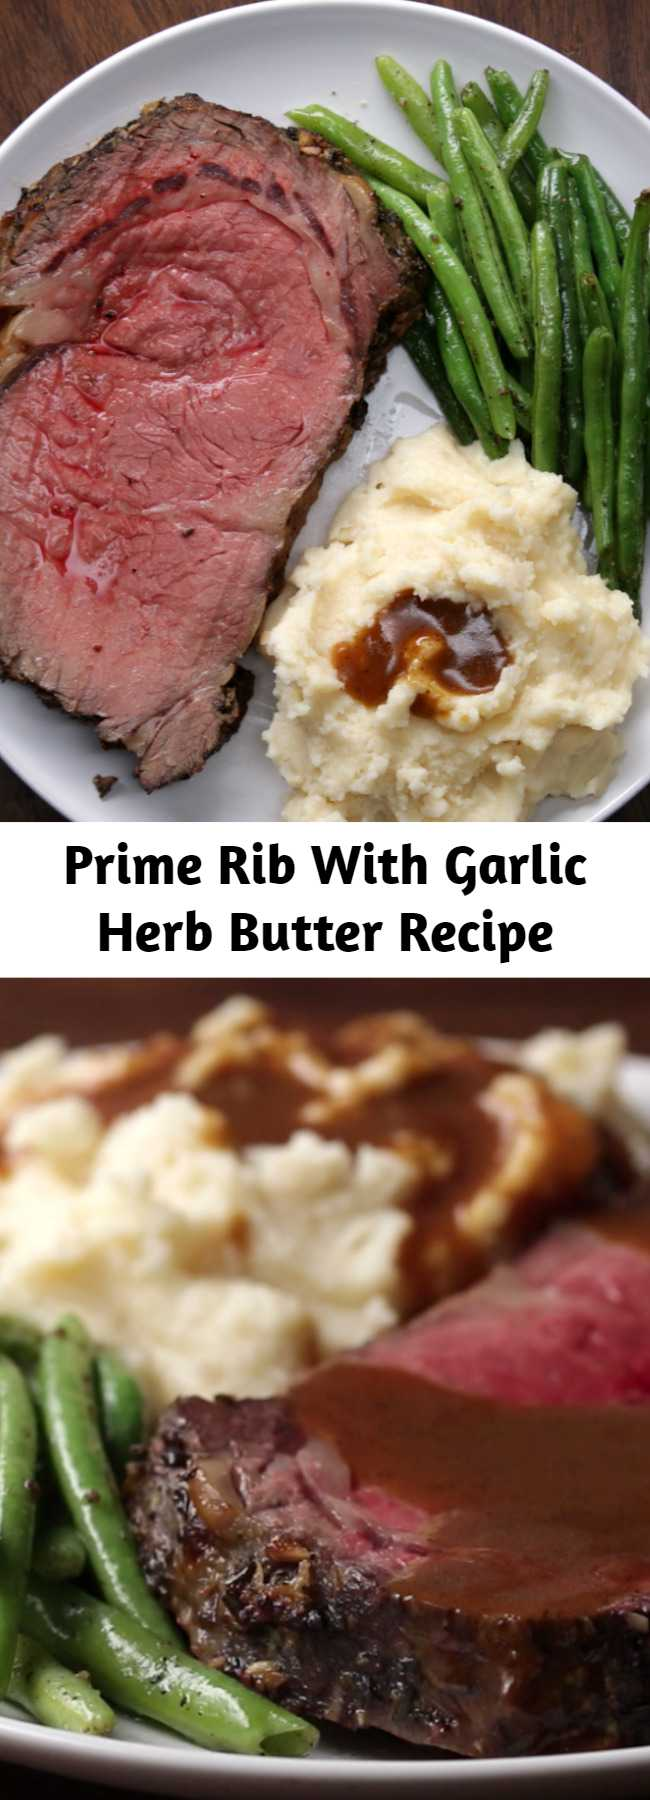 Prime Rib With Garlic Herb Butter Recipe